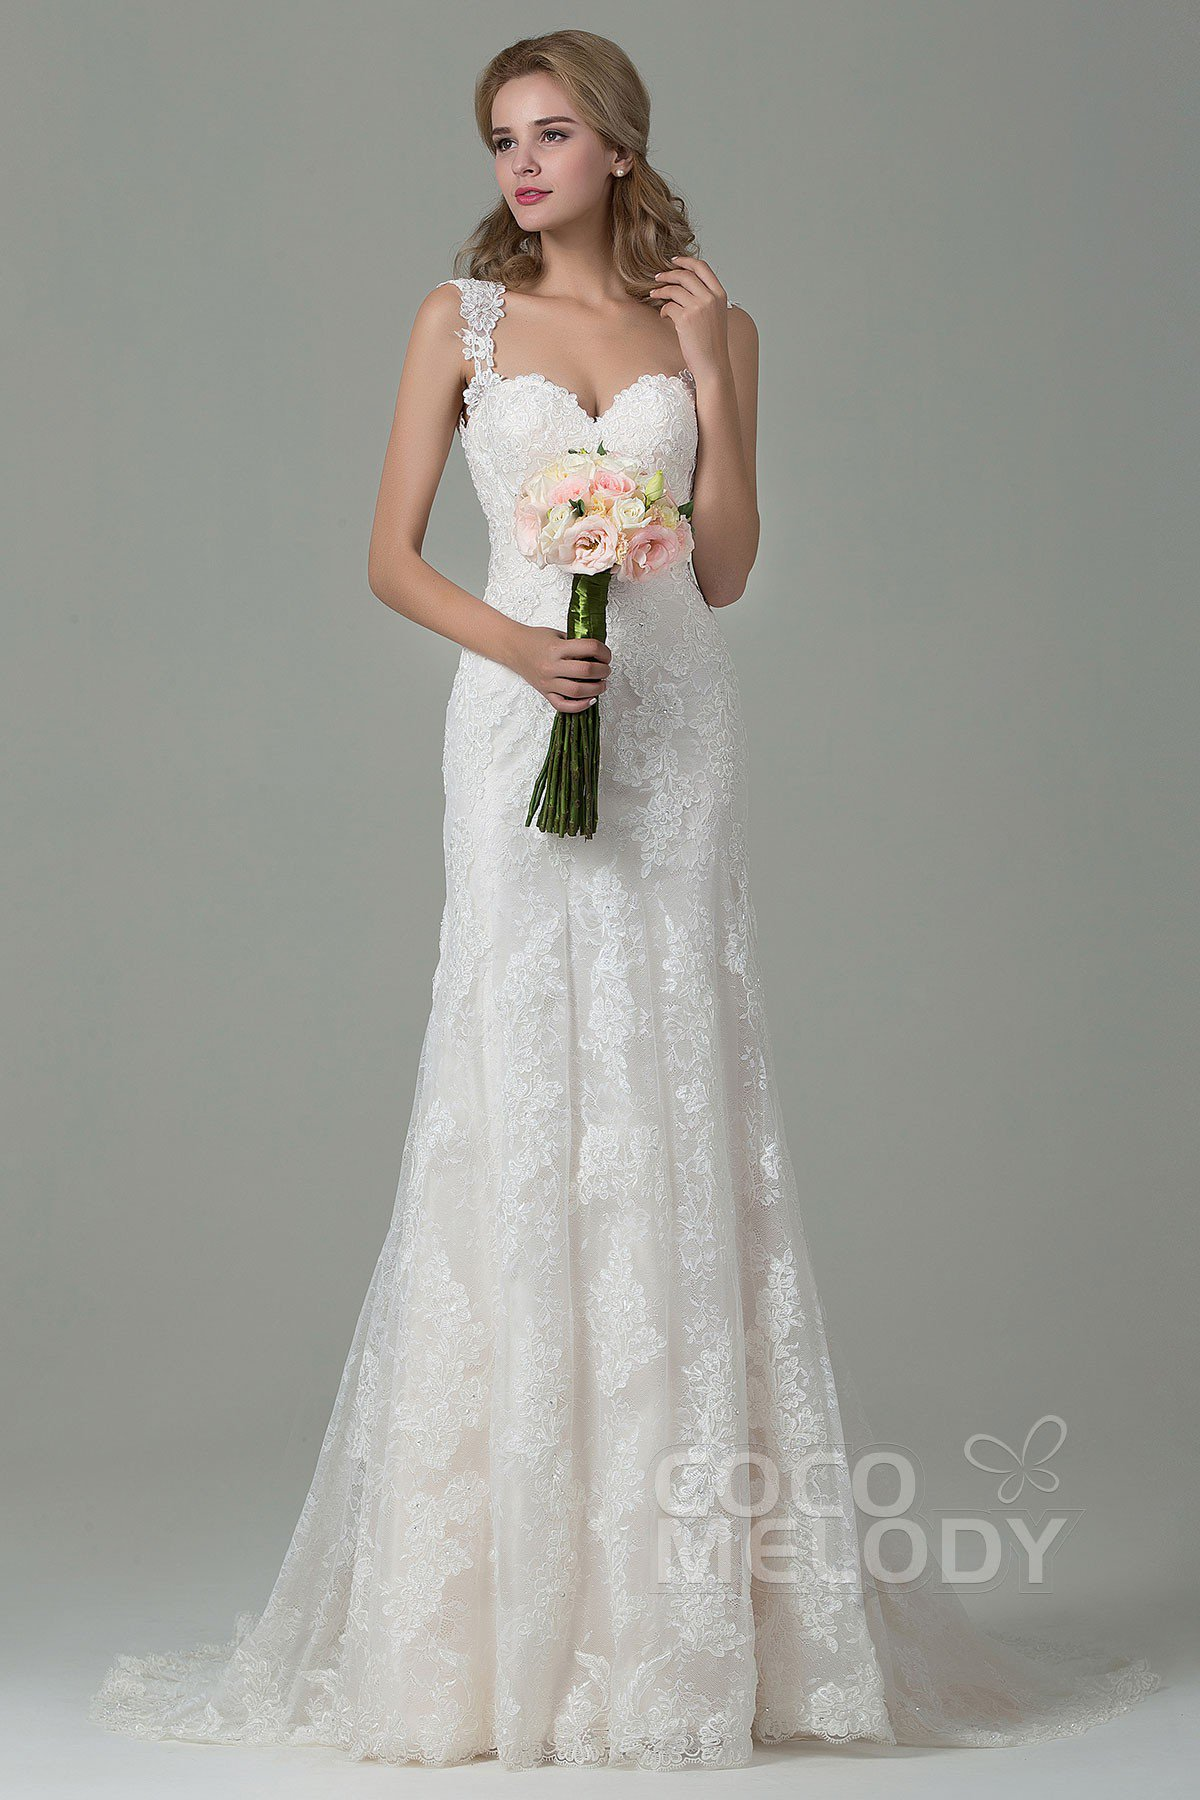 lace wedding dresses fabulous sheath-column straps natural train lace ivory/champagne sleeveless  backless wedding dress with hudjbdy